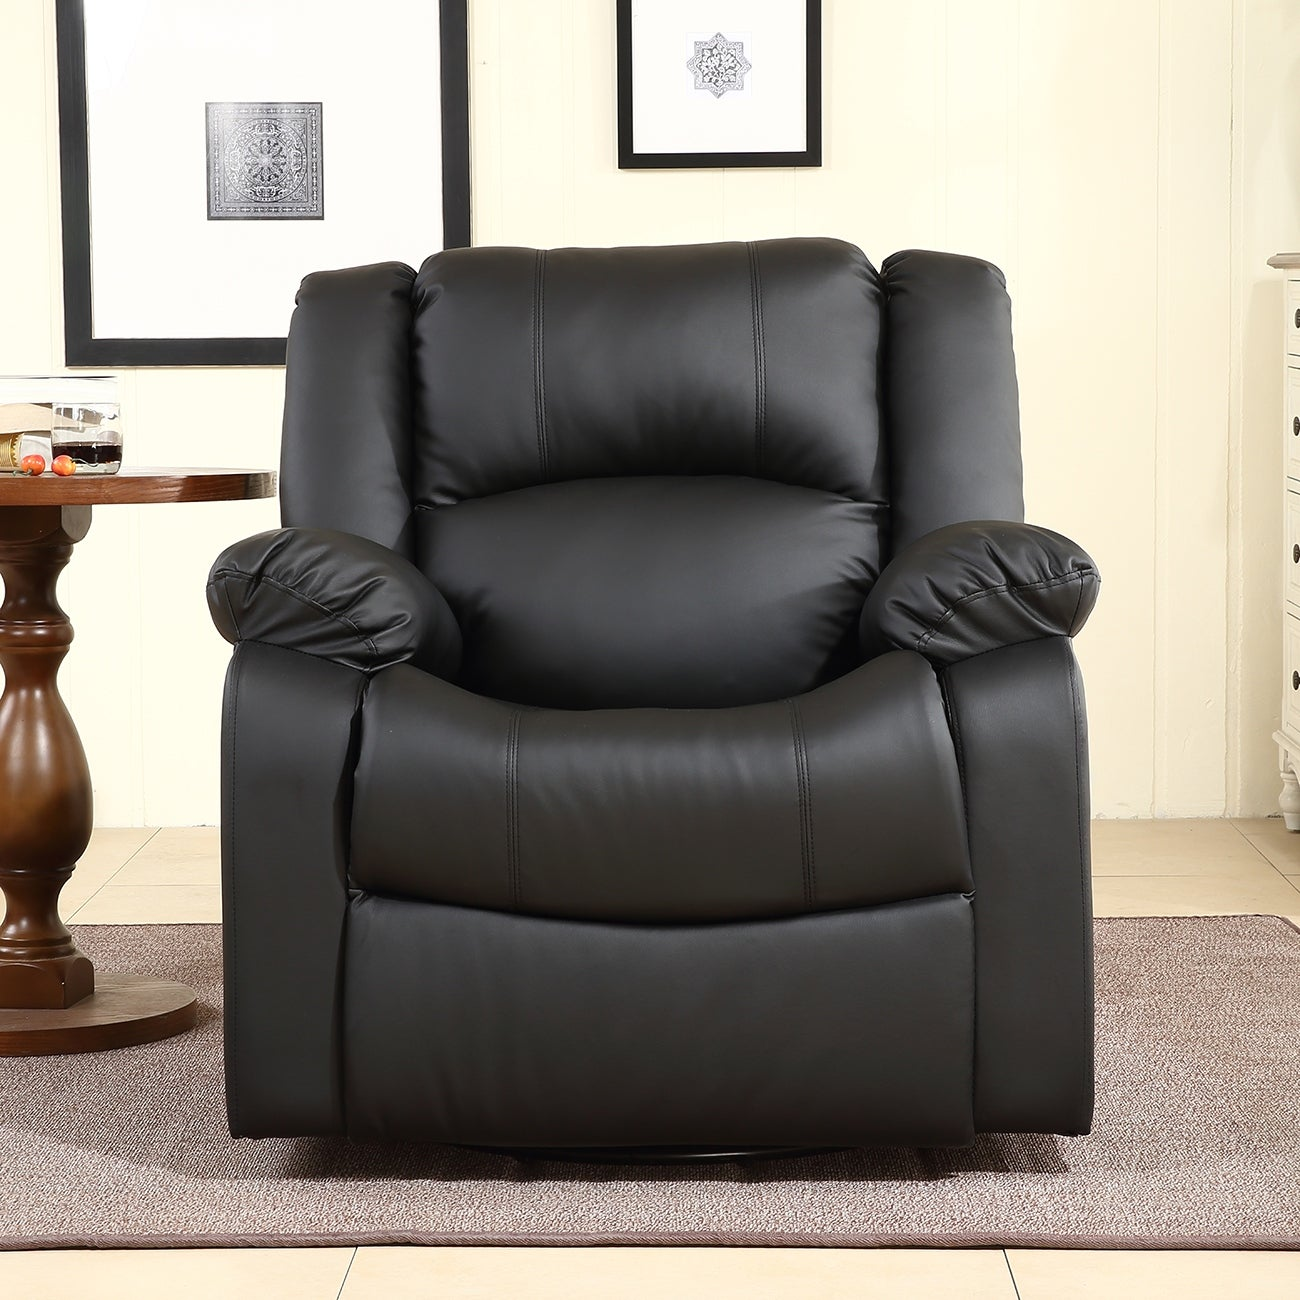 Belleze rocker and swivel glider recliner chair faux leather for living room free shipping today overstock 27824131